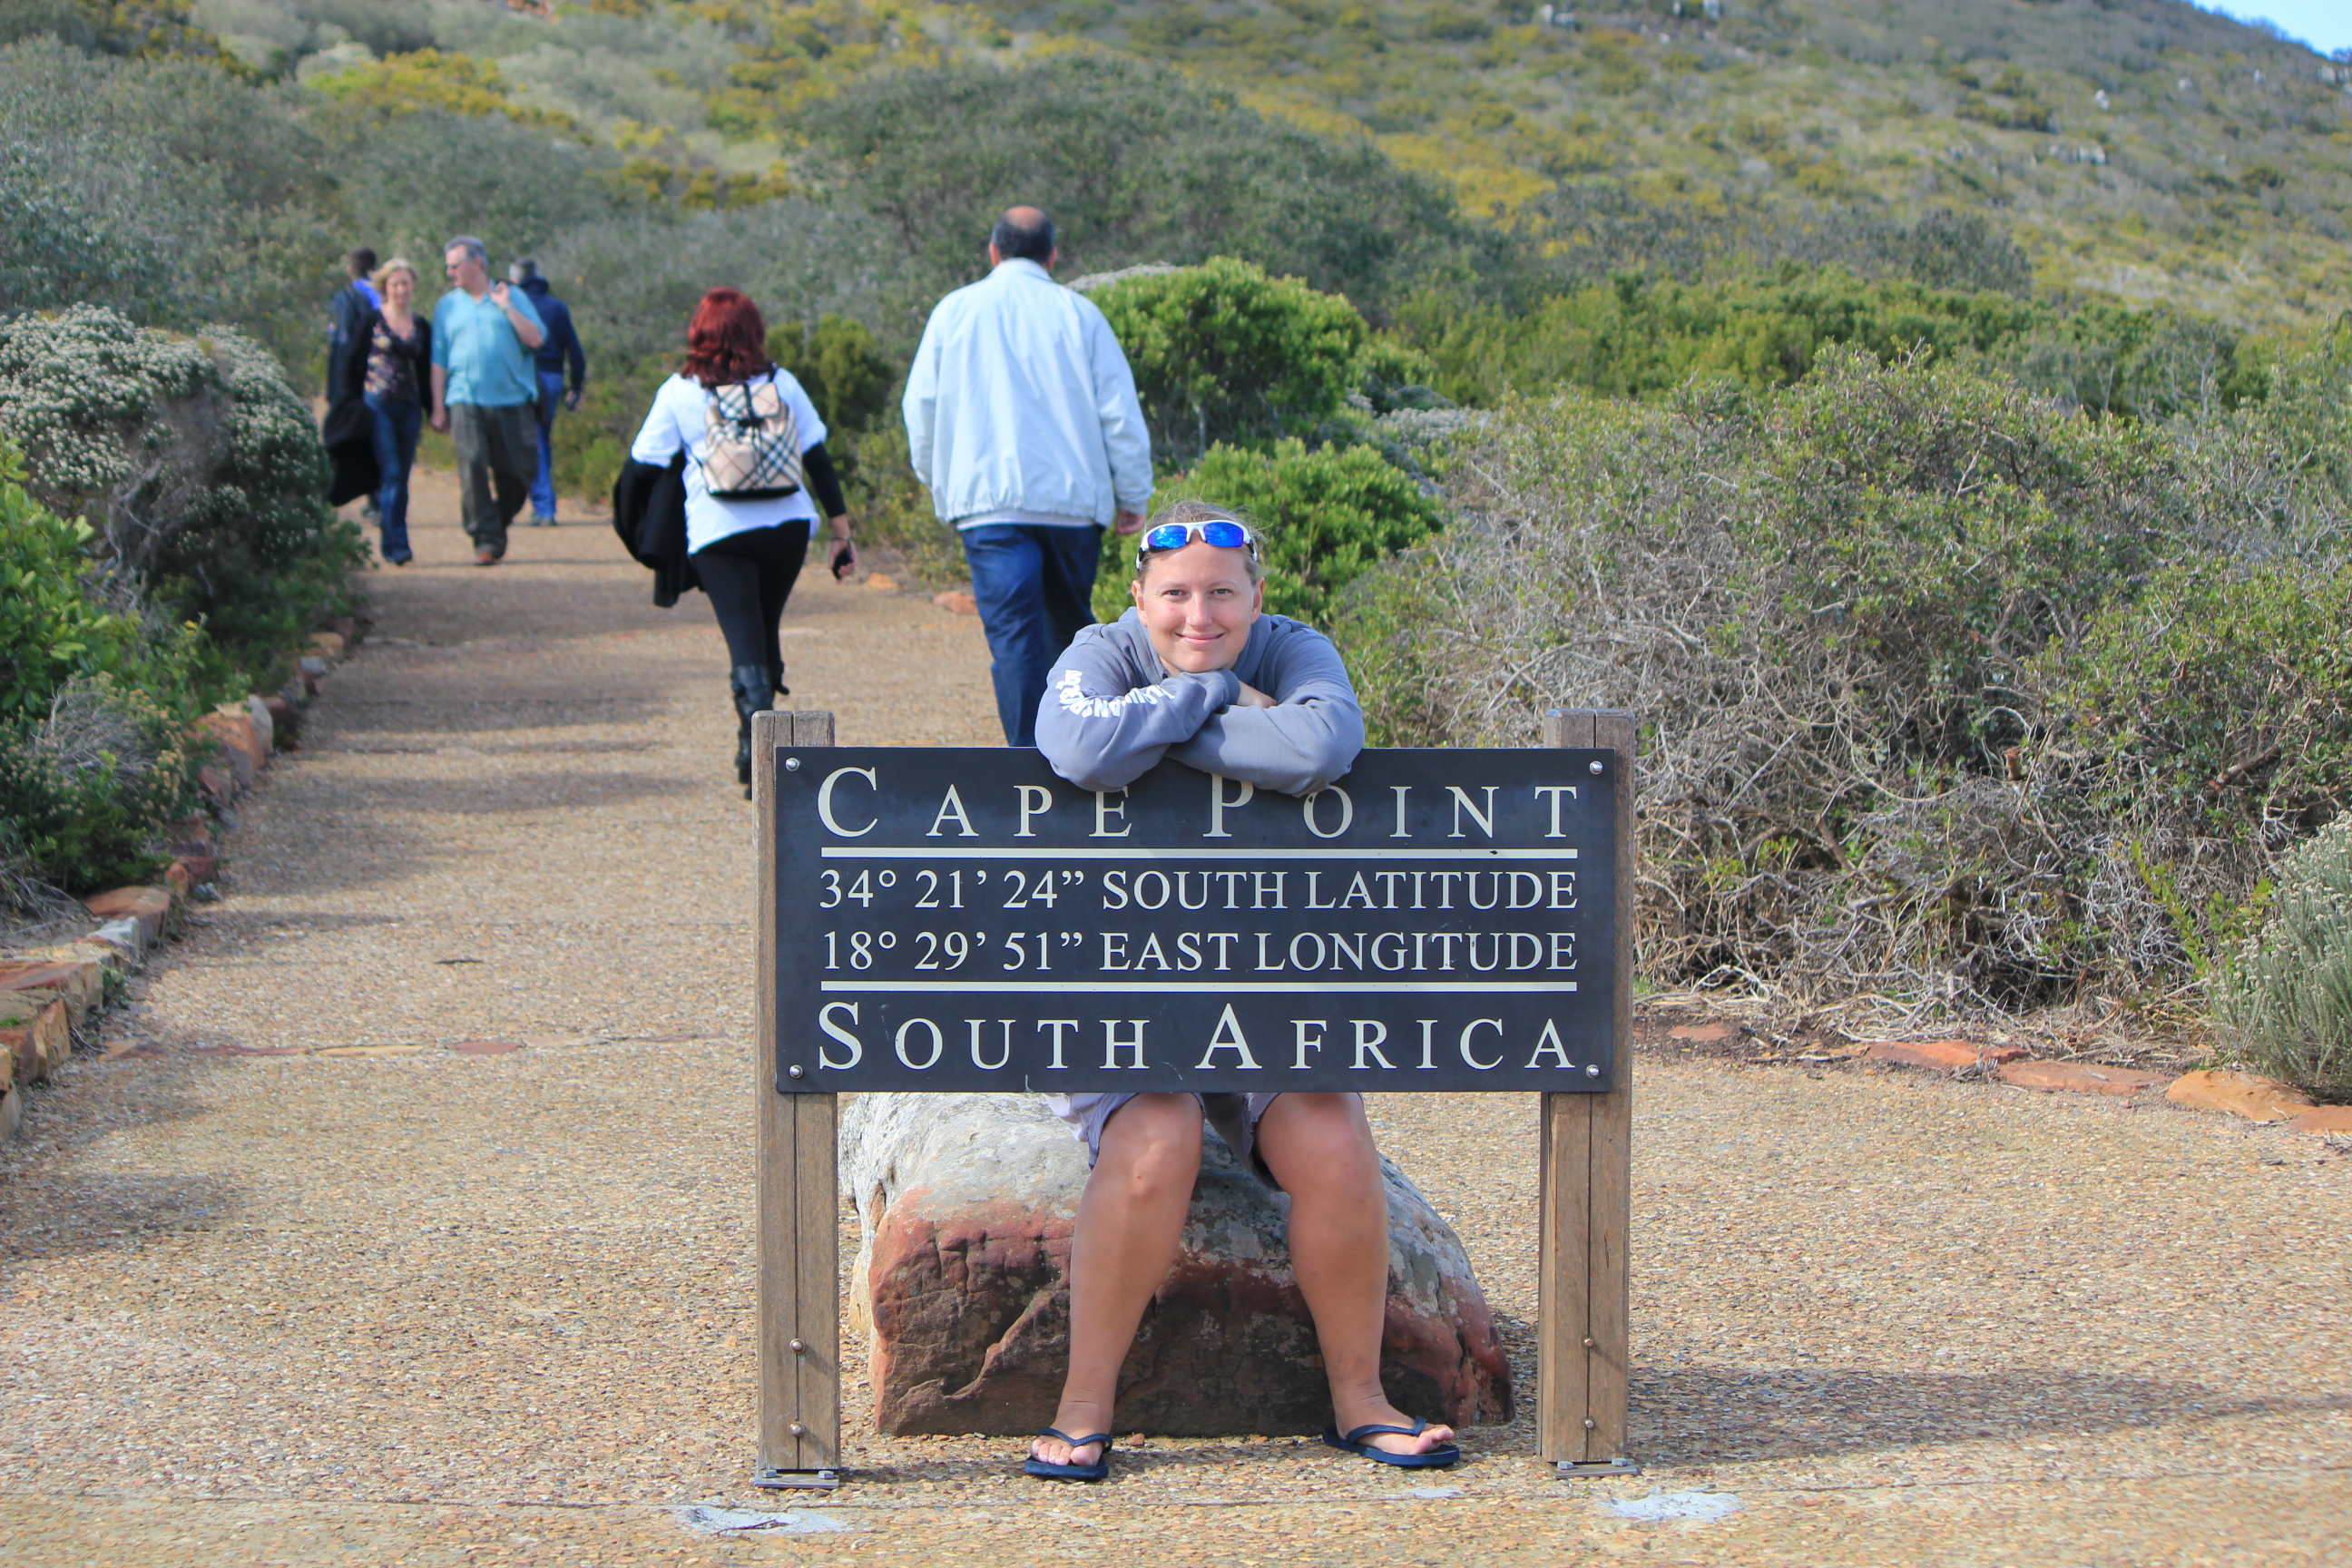 Cape Point, South Africa; 2011